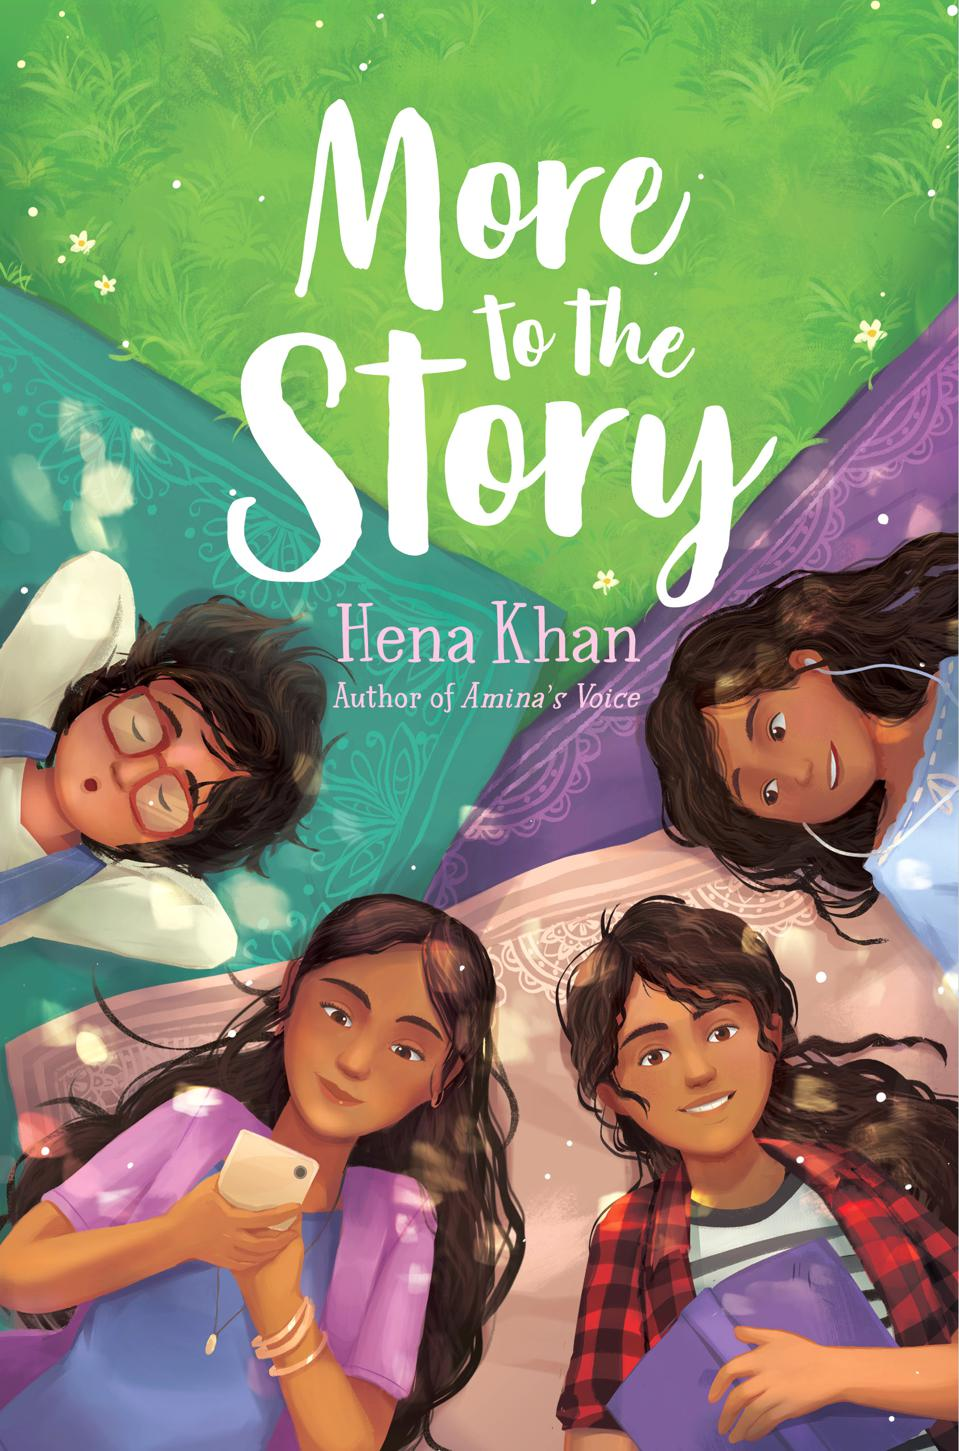 more to the story hena khan children's book